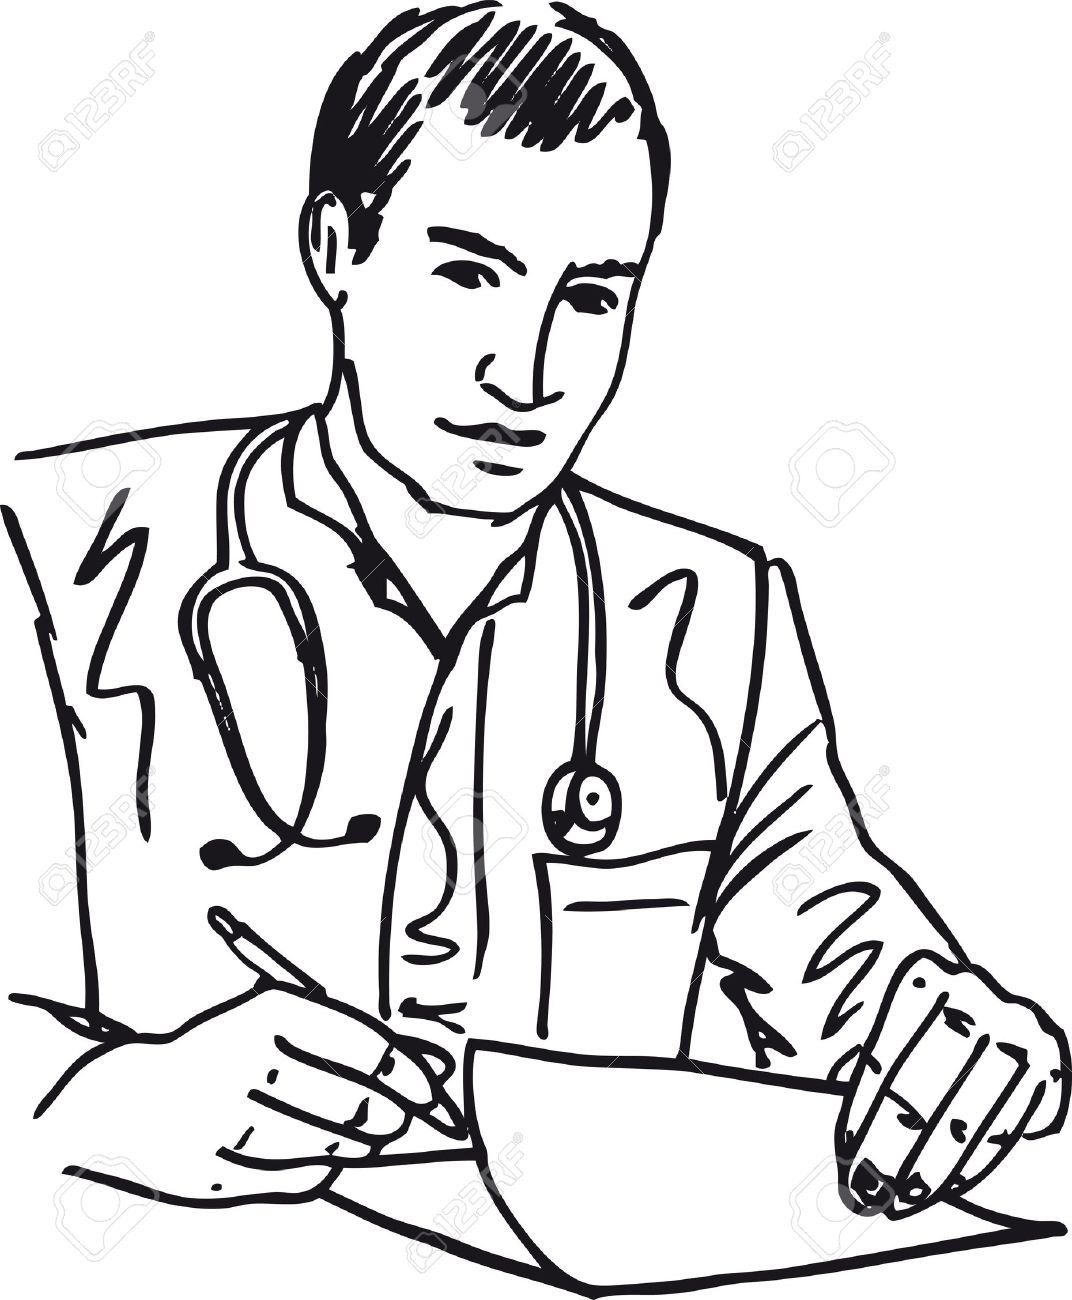 doctor clipart black and white 2 clipart station rh clipartstation com female doctor clipart black and white doctor tools clipart black and white